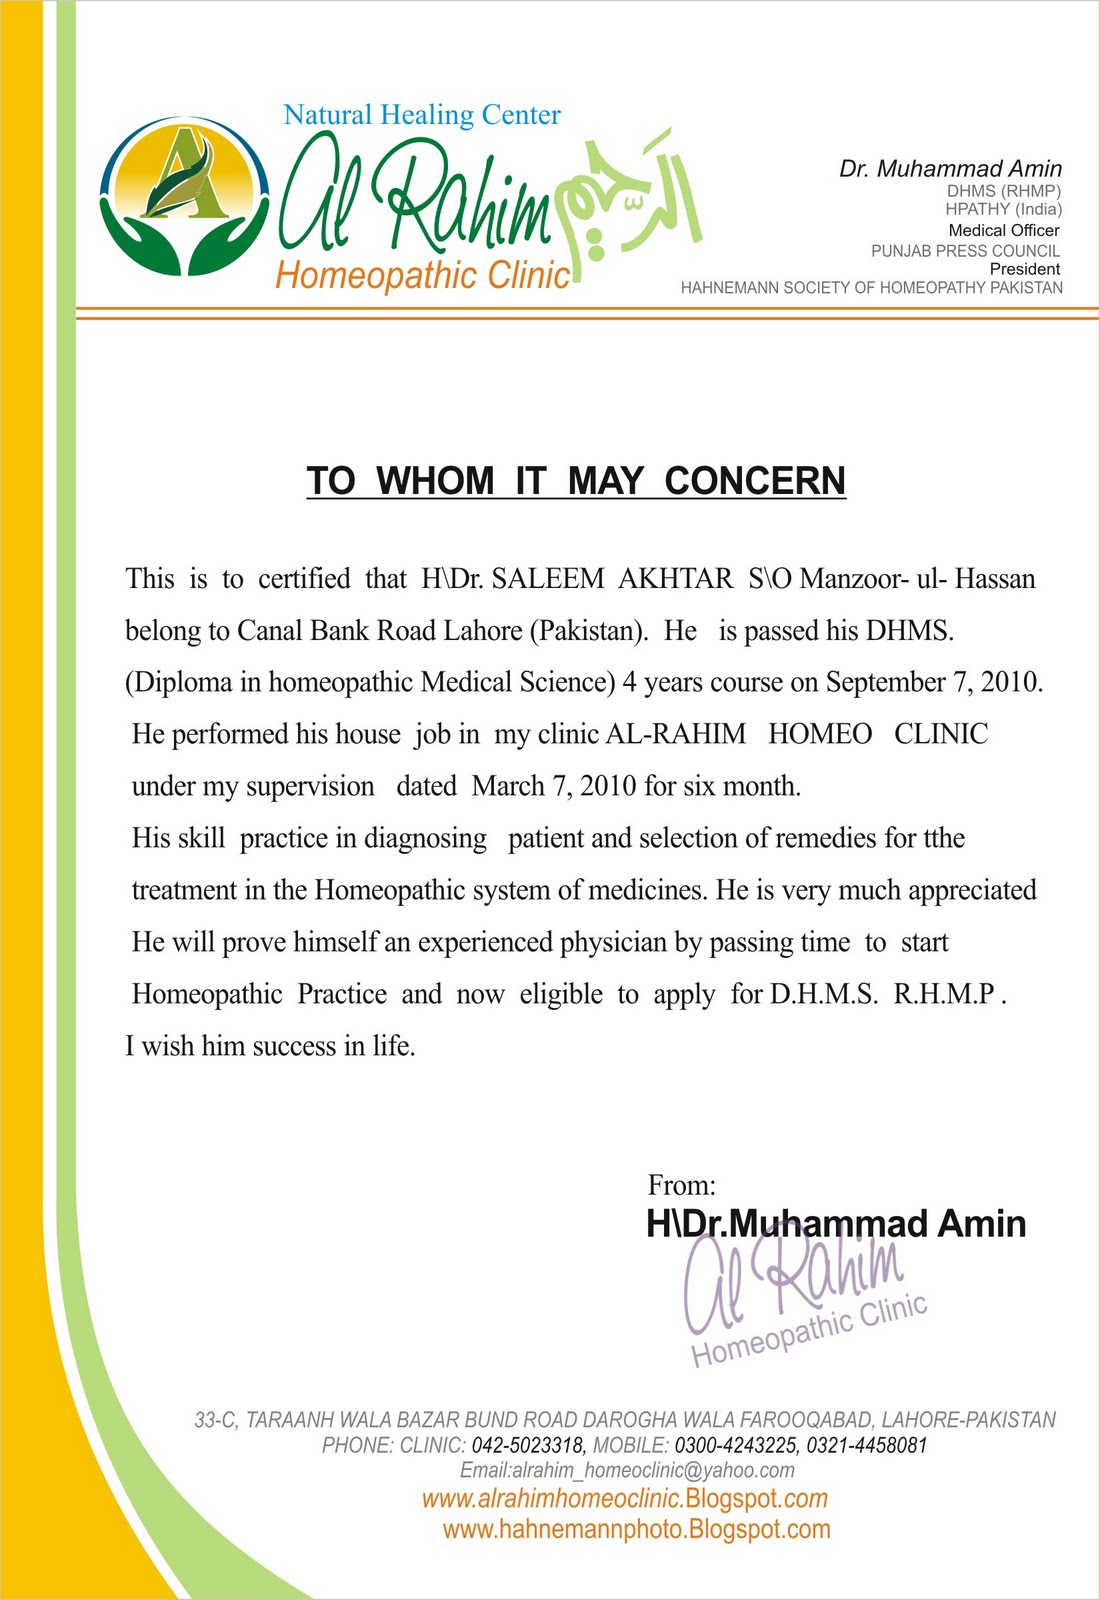 Alrahim Sample Of Experience Certificate For Dhms Rhmp